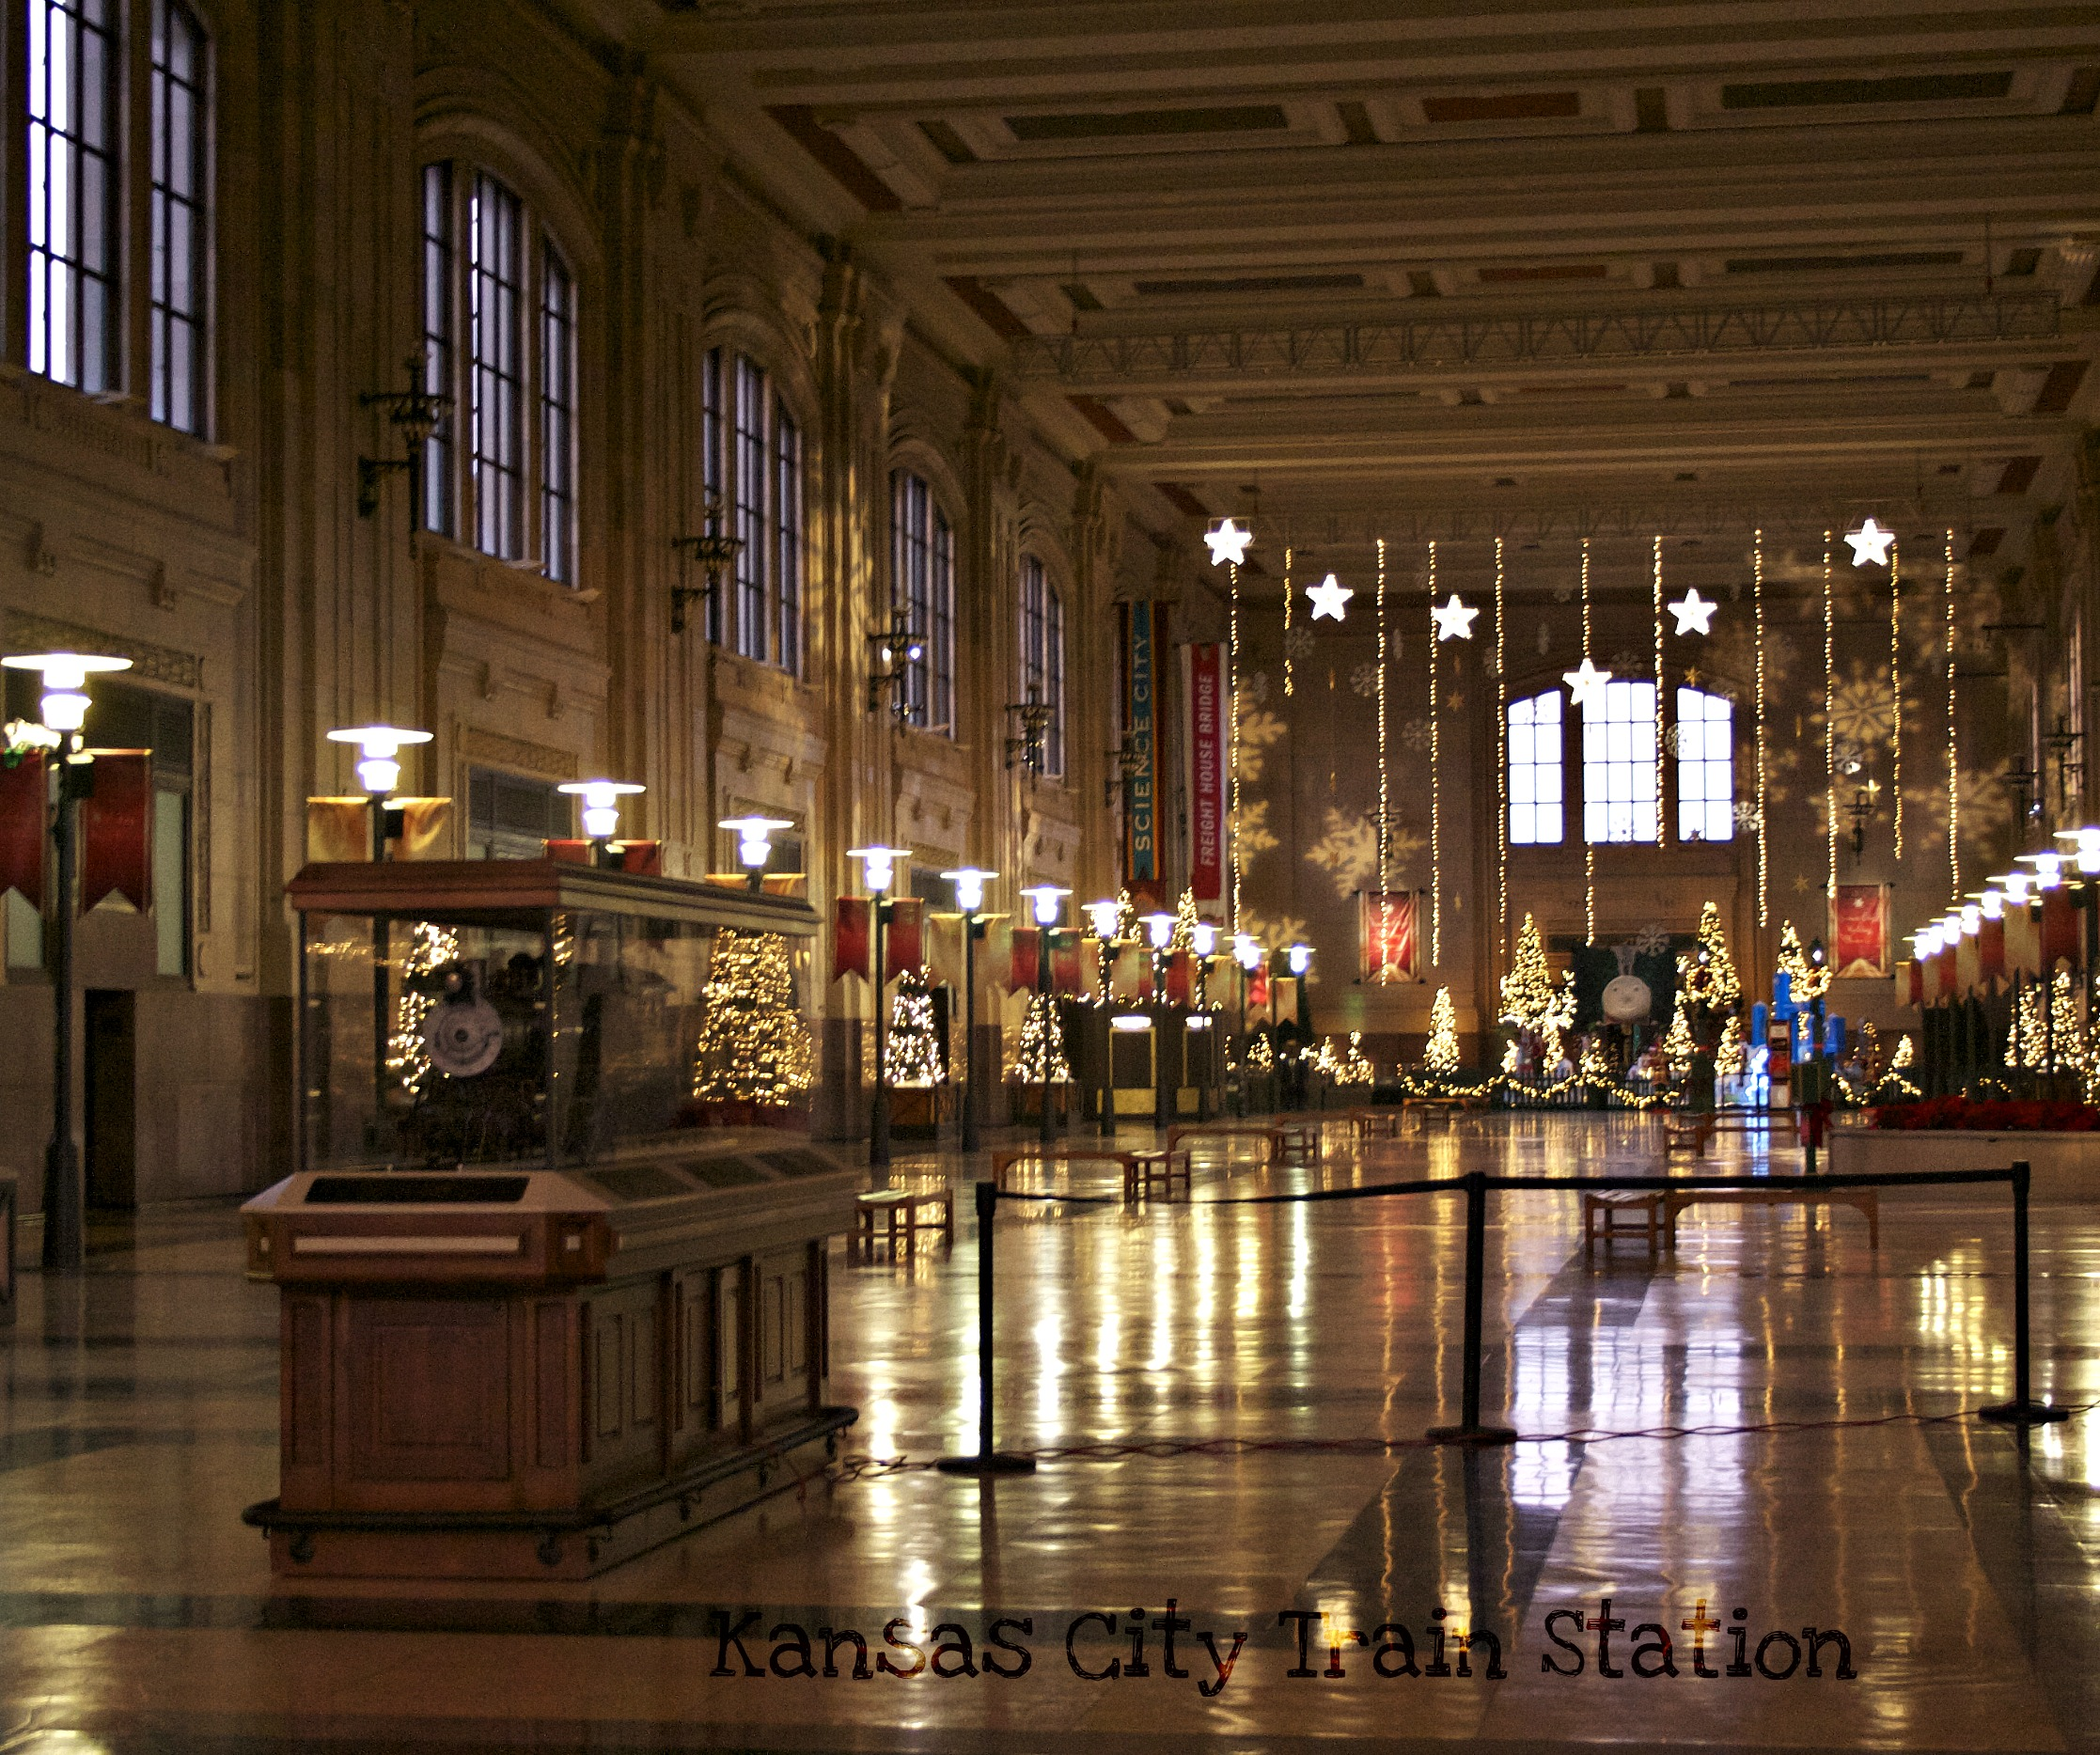 Train station, Kansas City